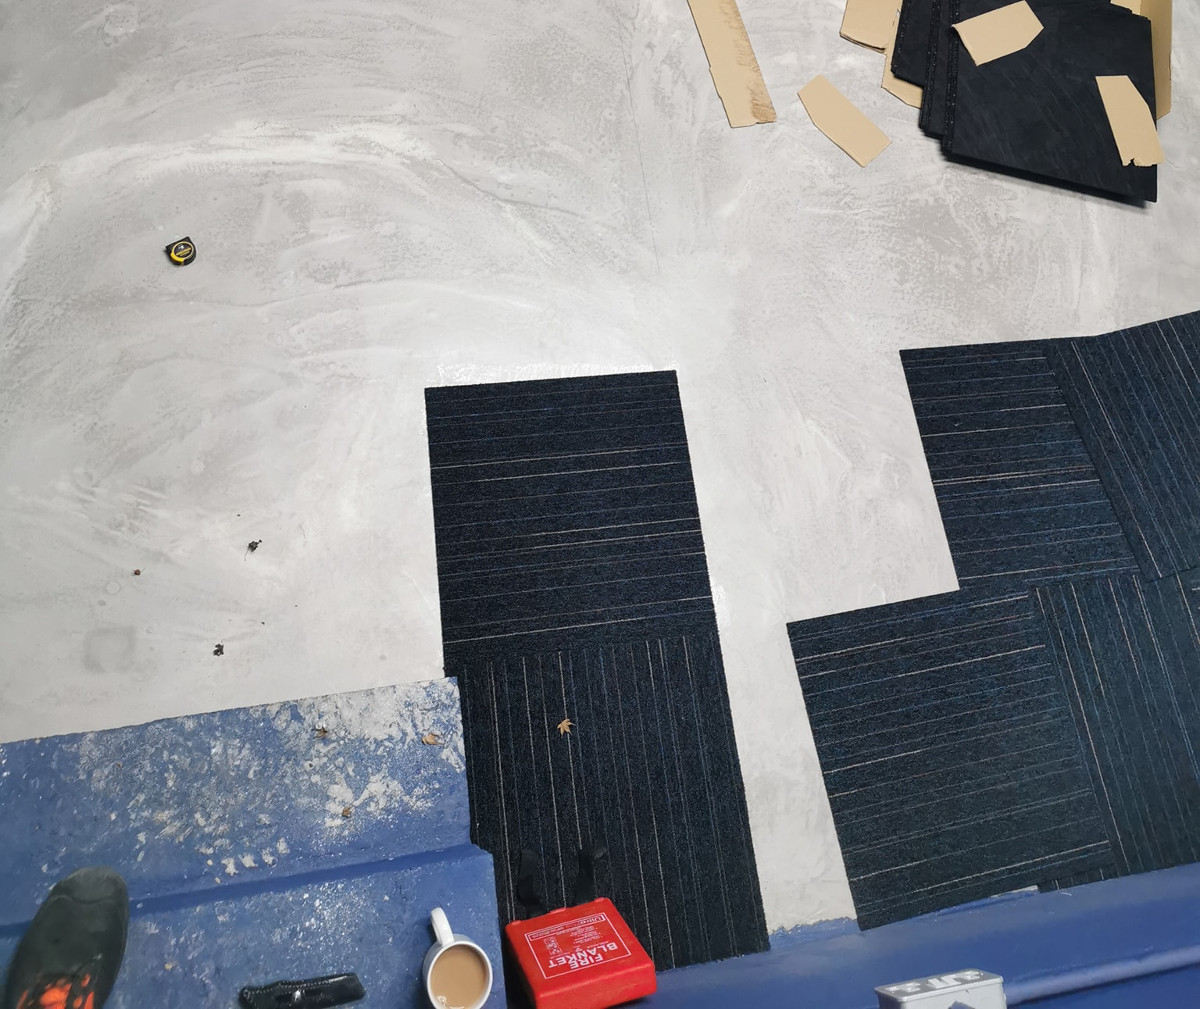 carpet tiles being laid